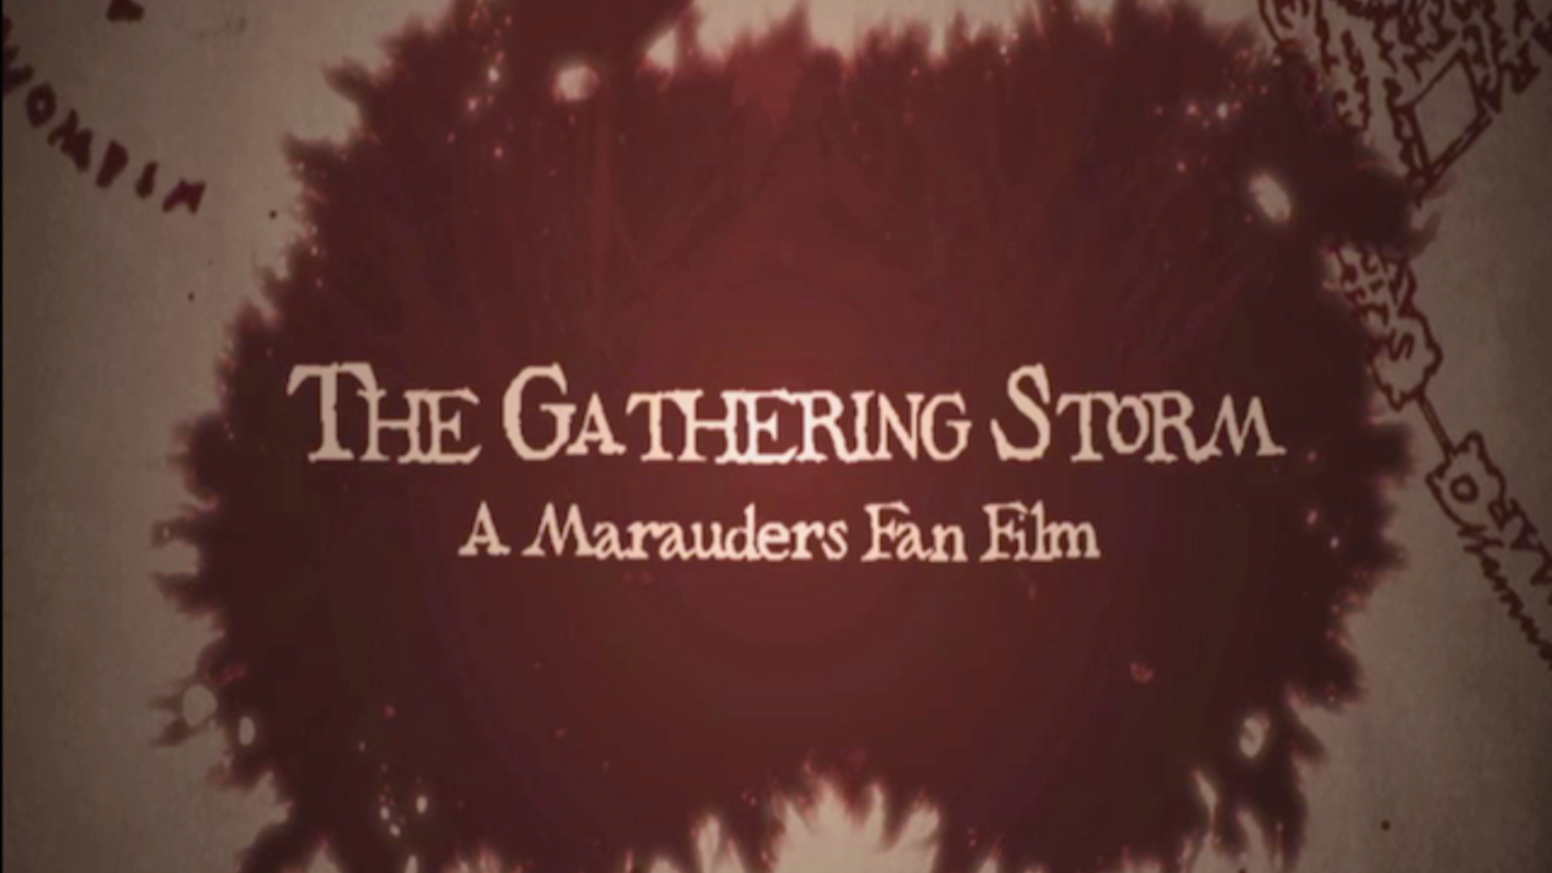 A fan-made film about the Marauders' sixth year at school, and the events that lead to their places in the First Wizarding War.